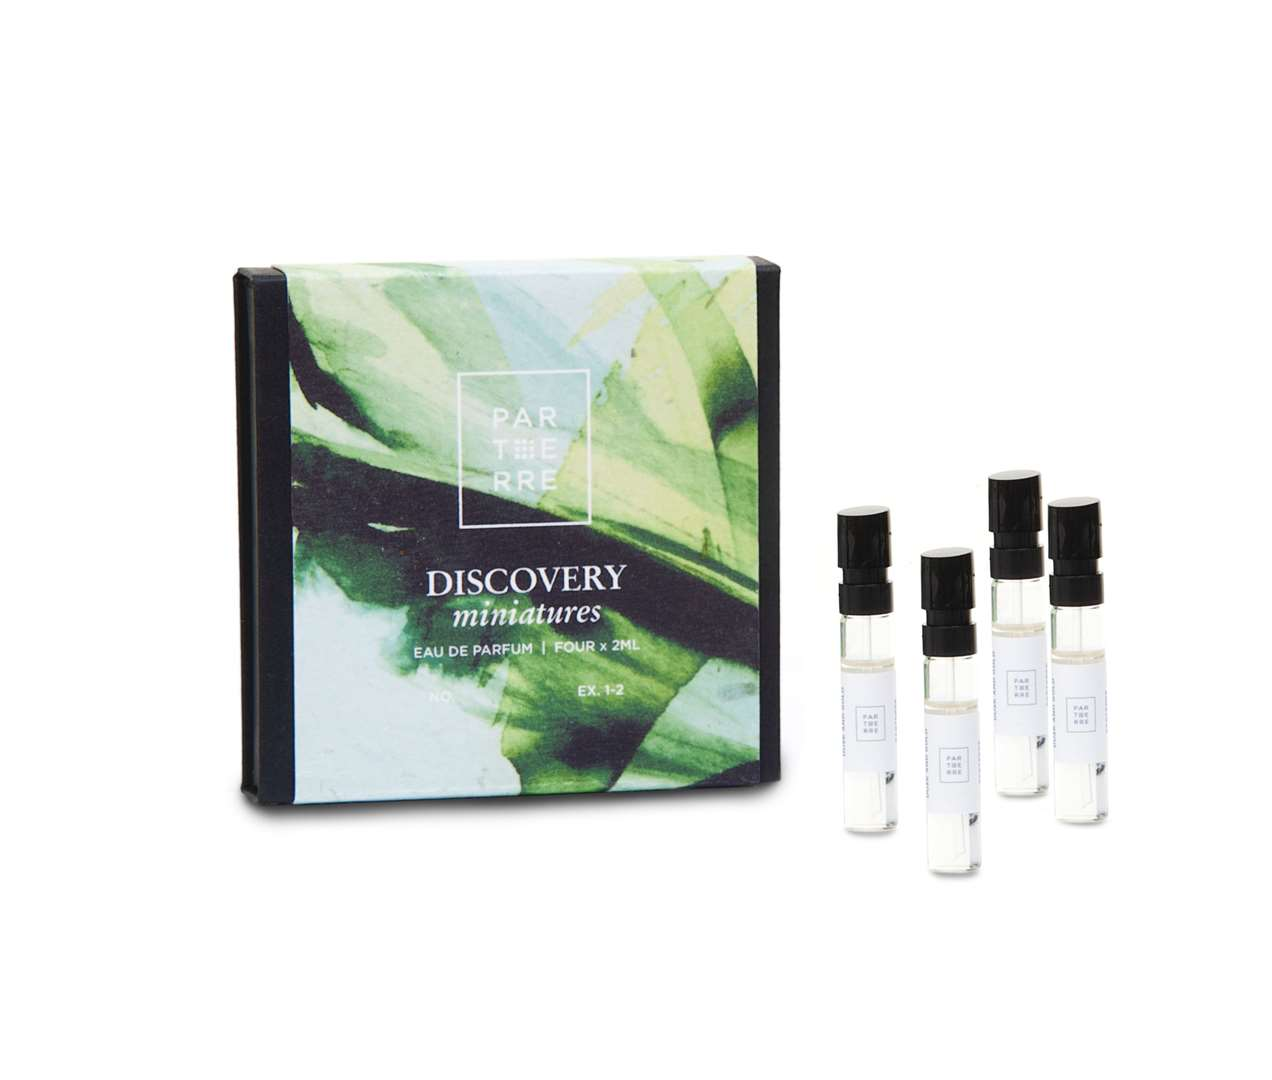 Parterre Discovery Box, £30 for four 2ml eau de parfums, perfumesociety.org (34044341)